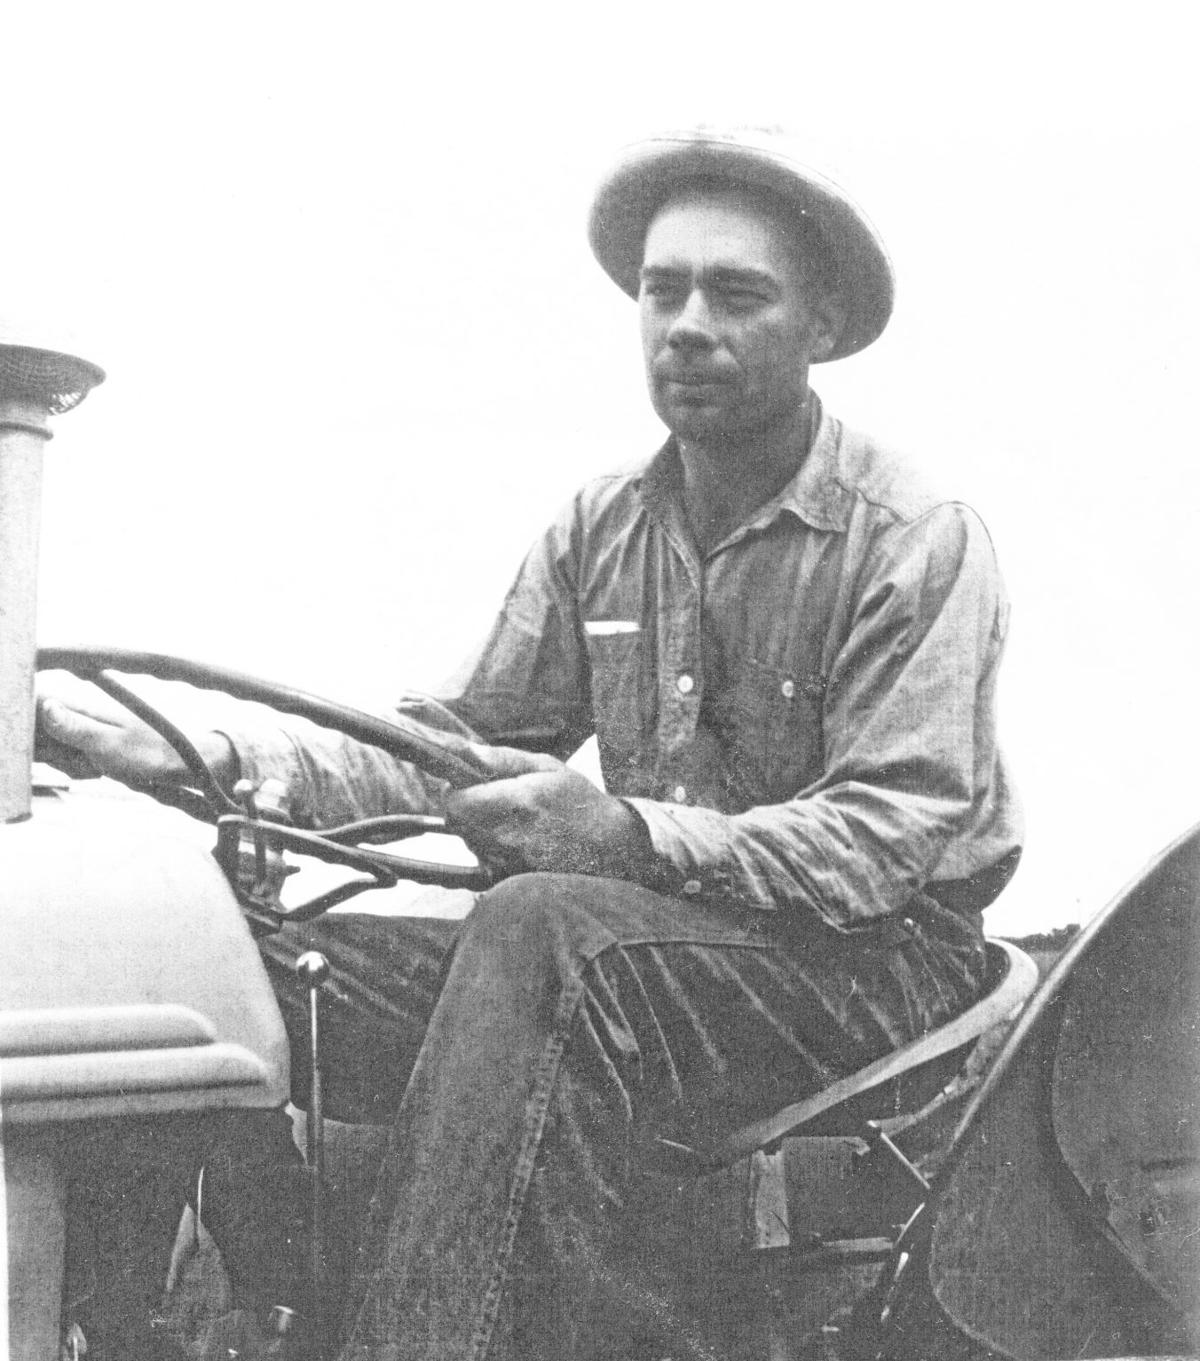 A father in agriculture remembered